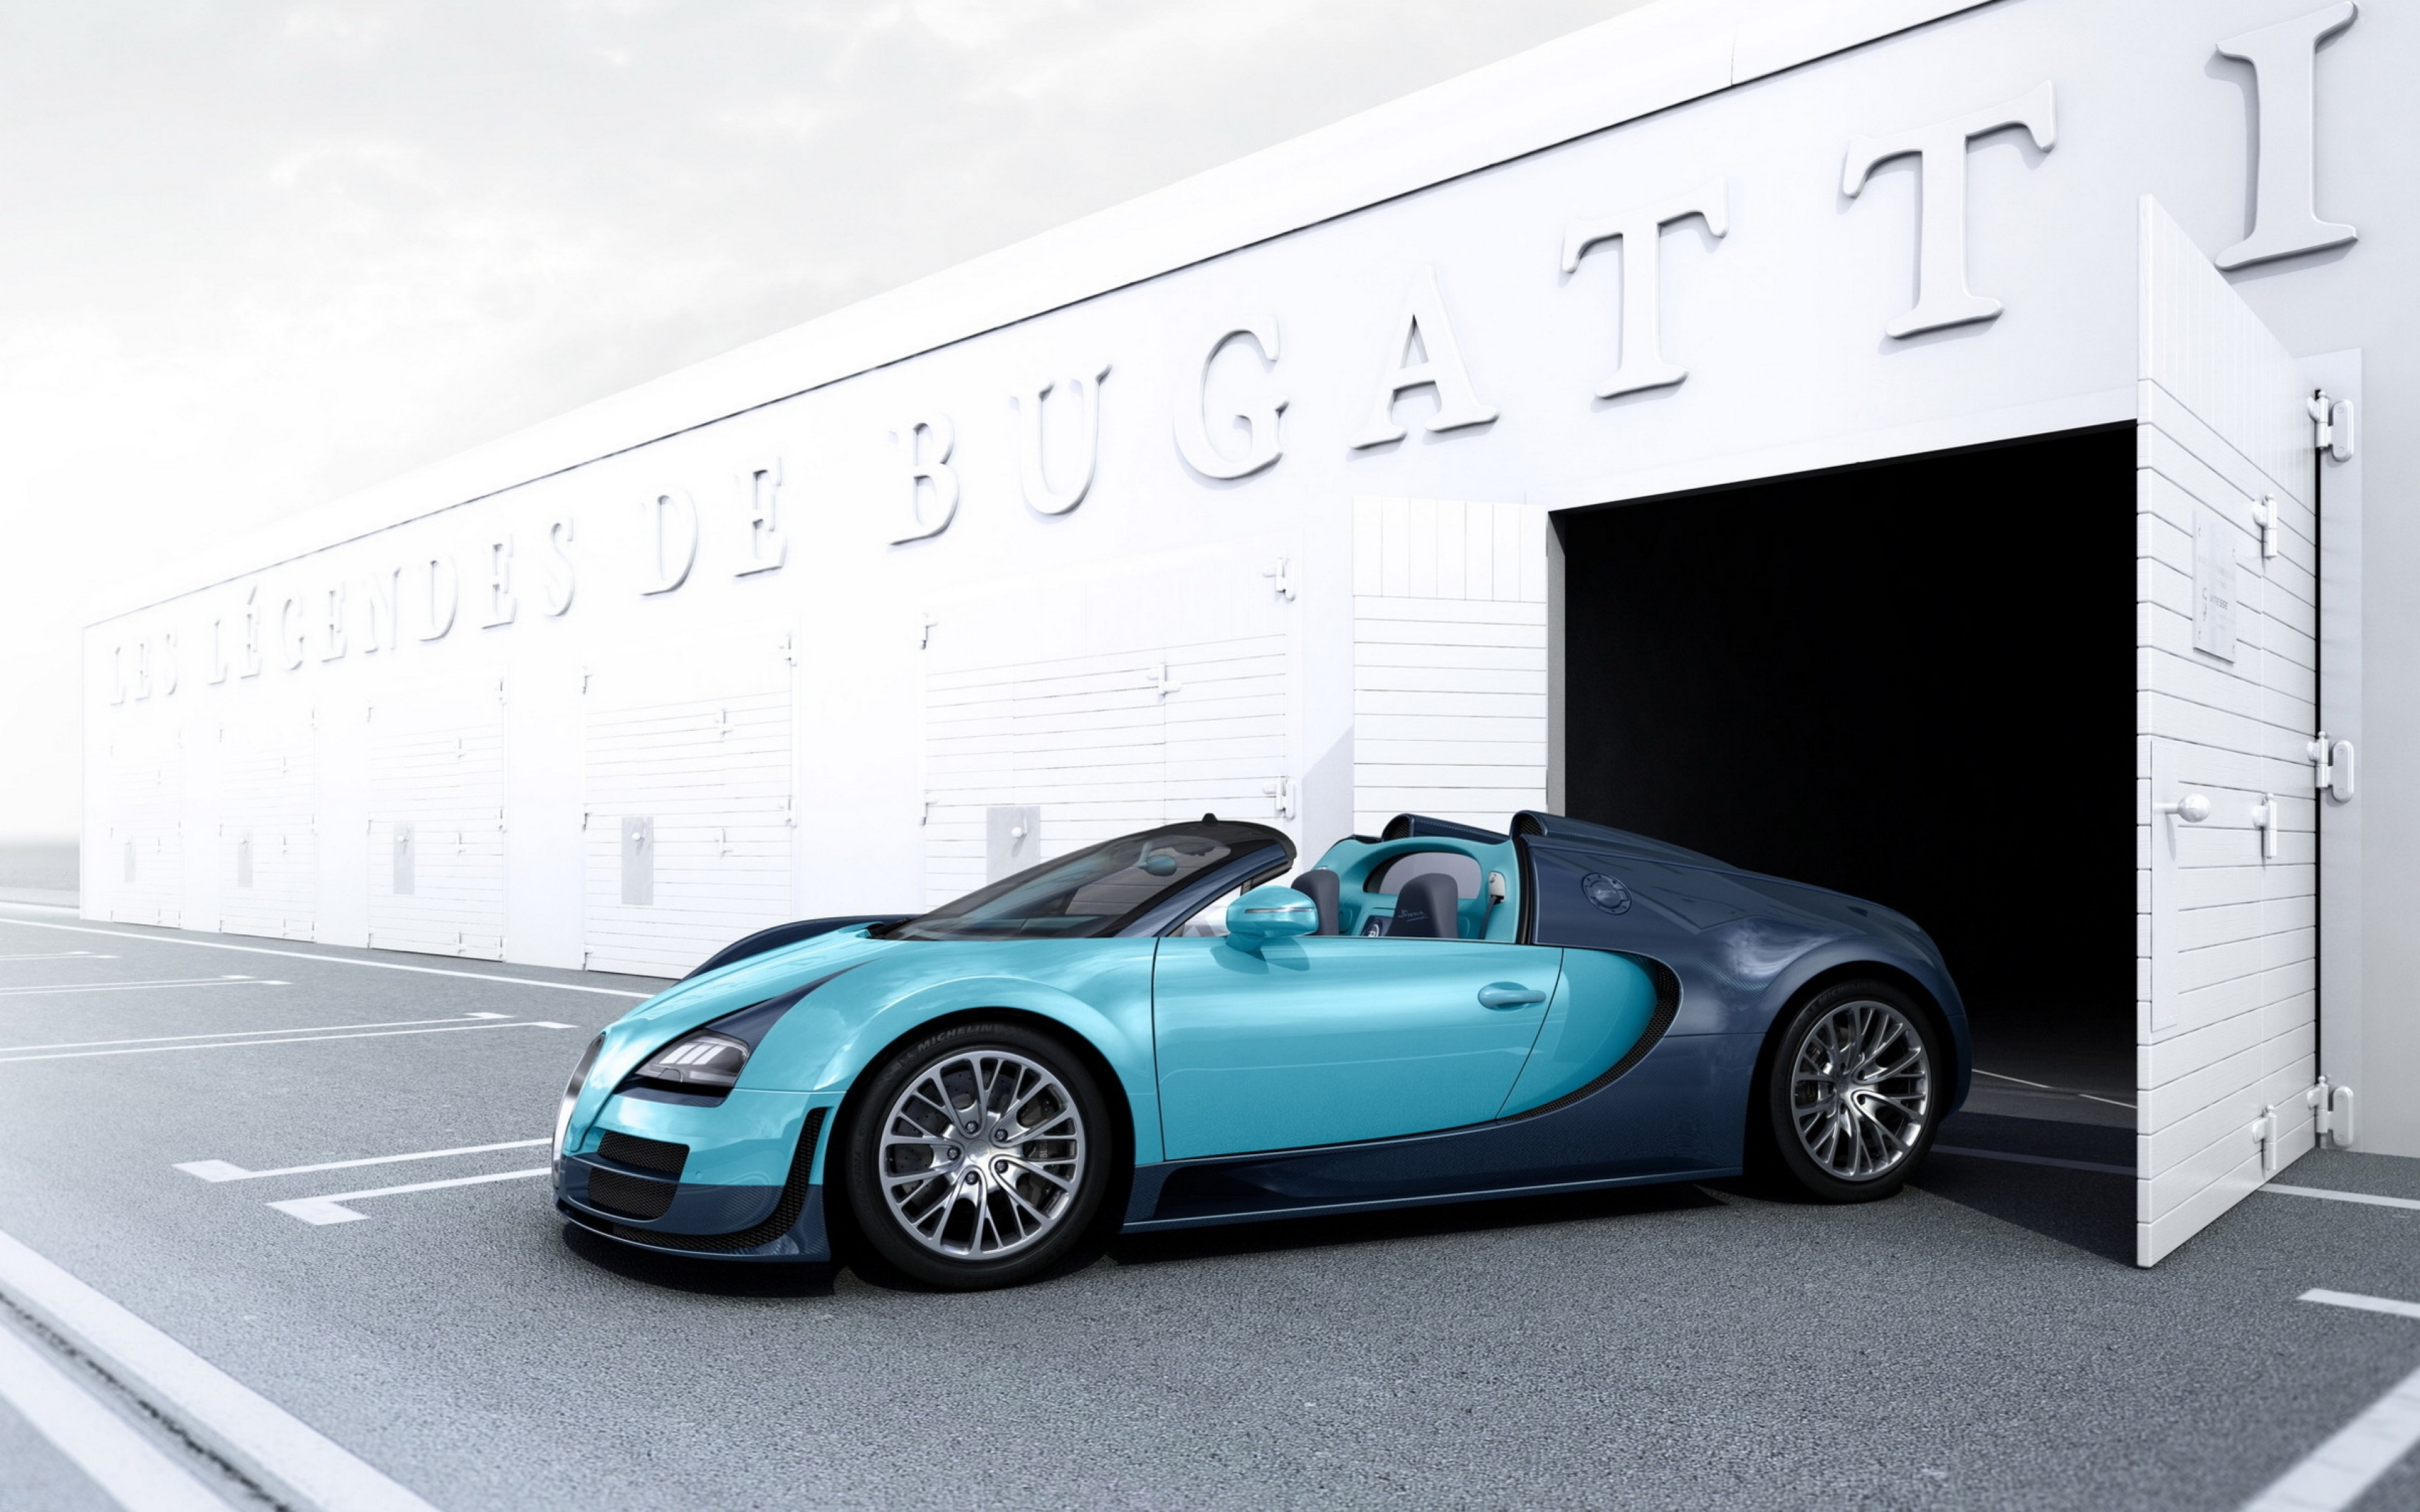 bugatti veyron grand sport vitesse wallpaper in different resolutions. Black Bedroom Furniture Sets. Home Design Ideas